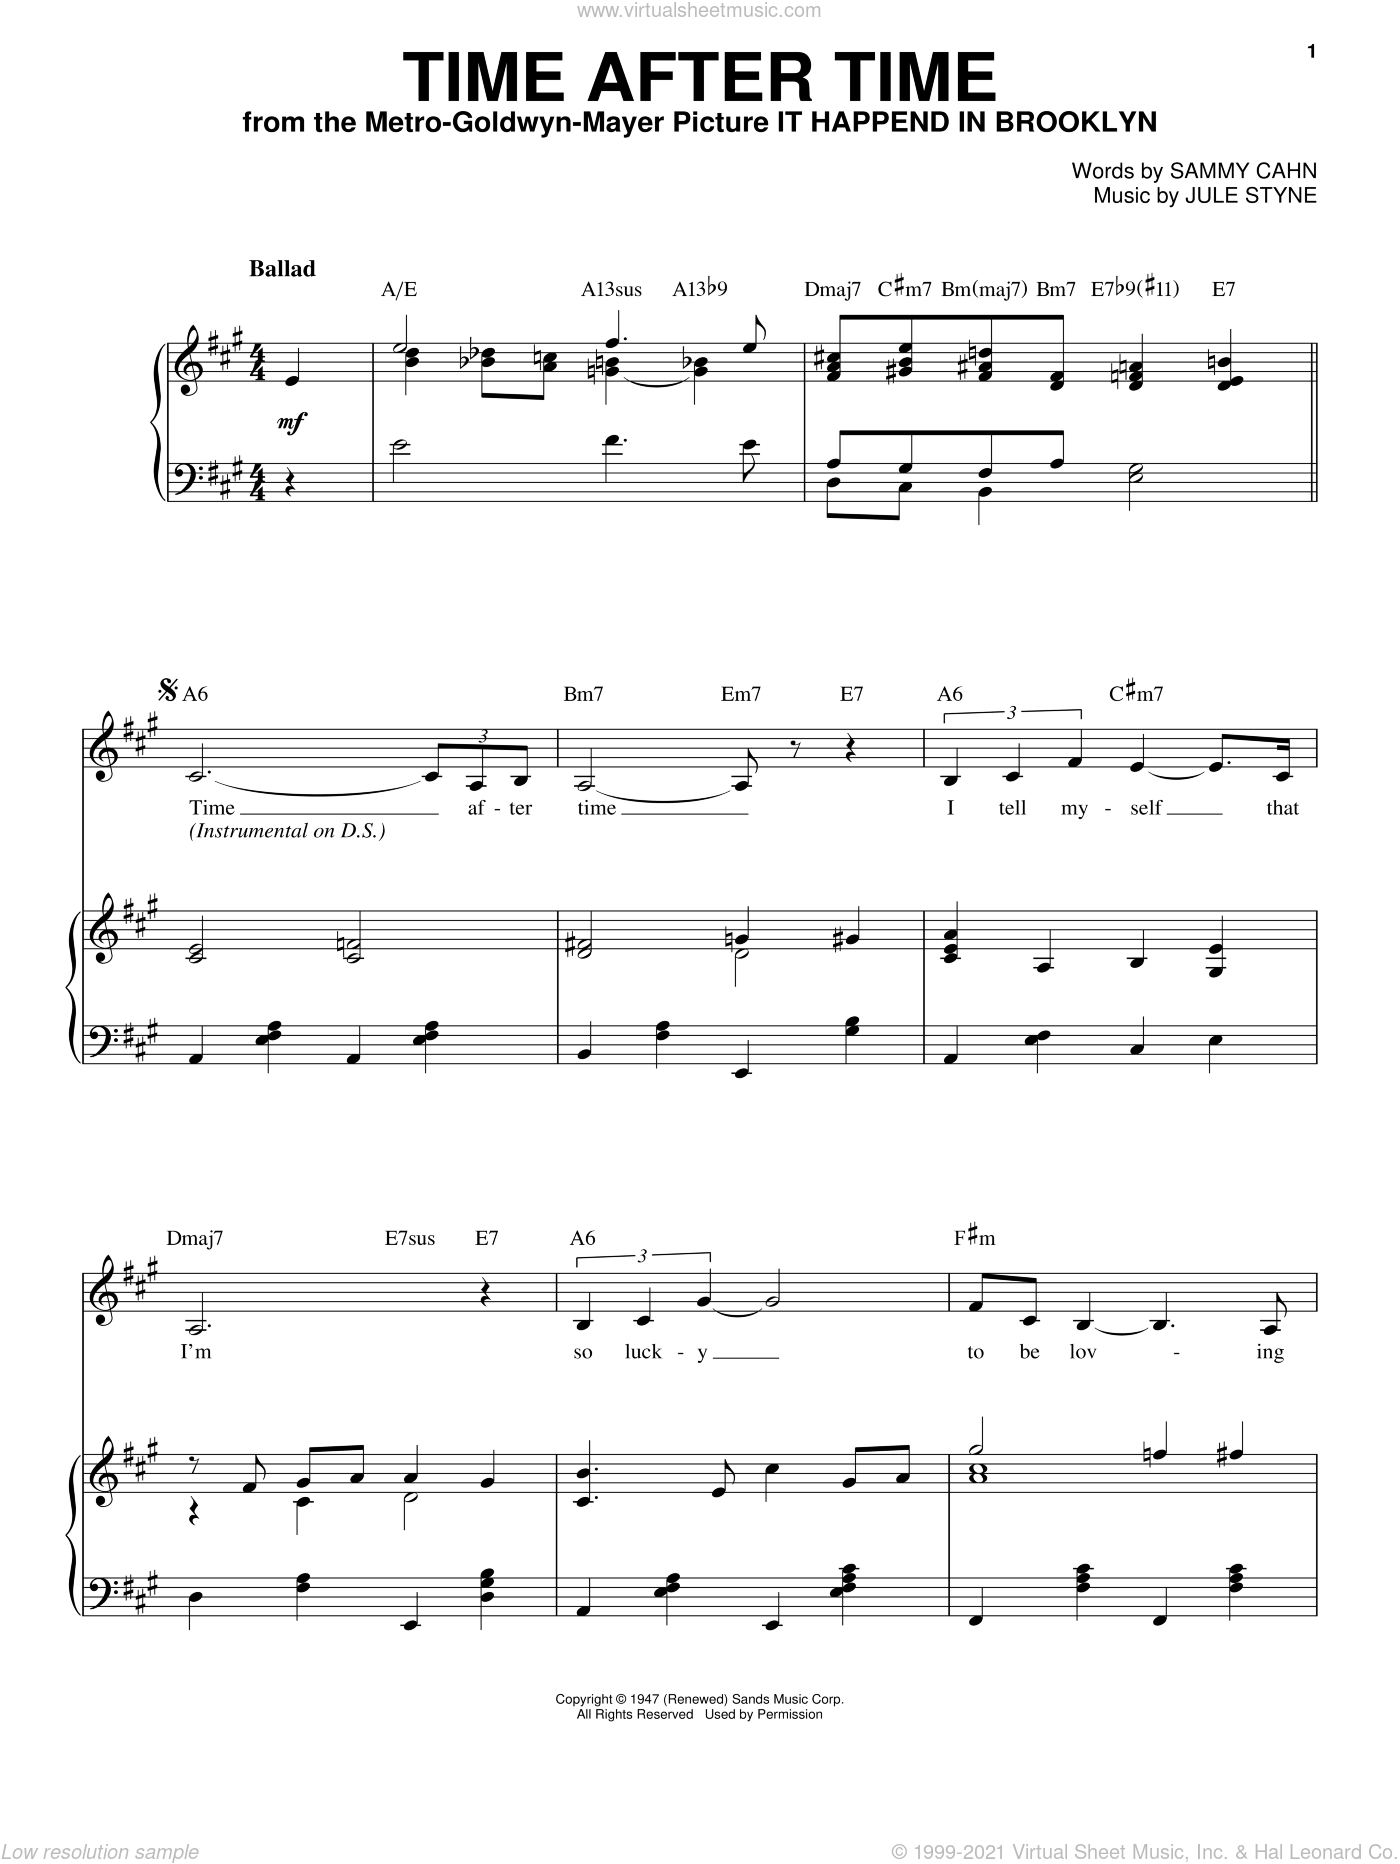 Time After Time sheet music for voice and piano by Frank Sinatra, Jule Styne and Sammy Cahn, wedding score, intermediate skill level